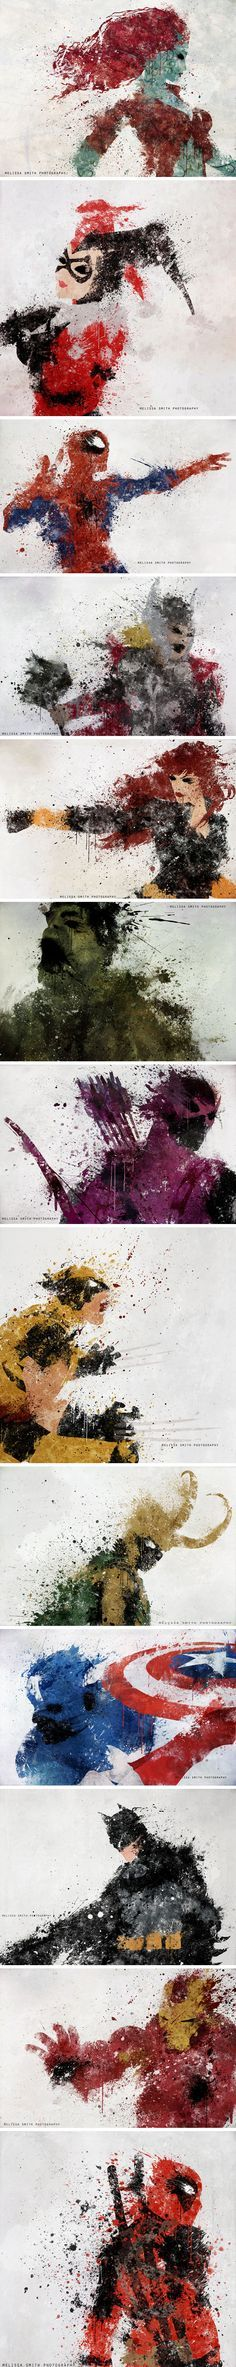 Melissa Smiths superhero splatter art. The only thing I don't like is that they mixed DC Comics and Marvel Comics